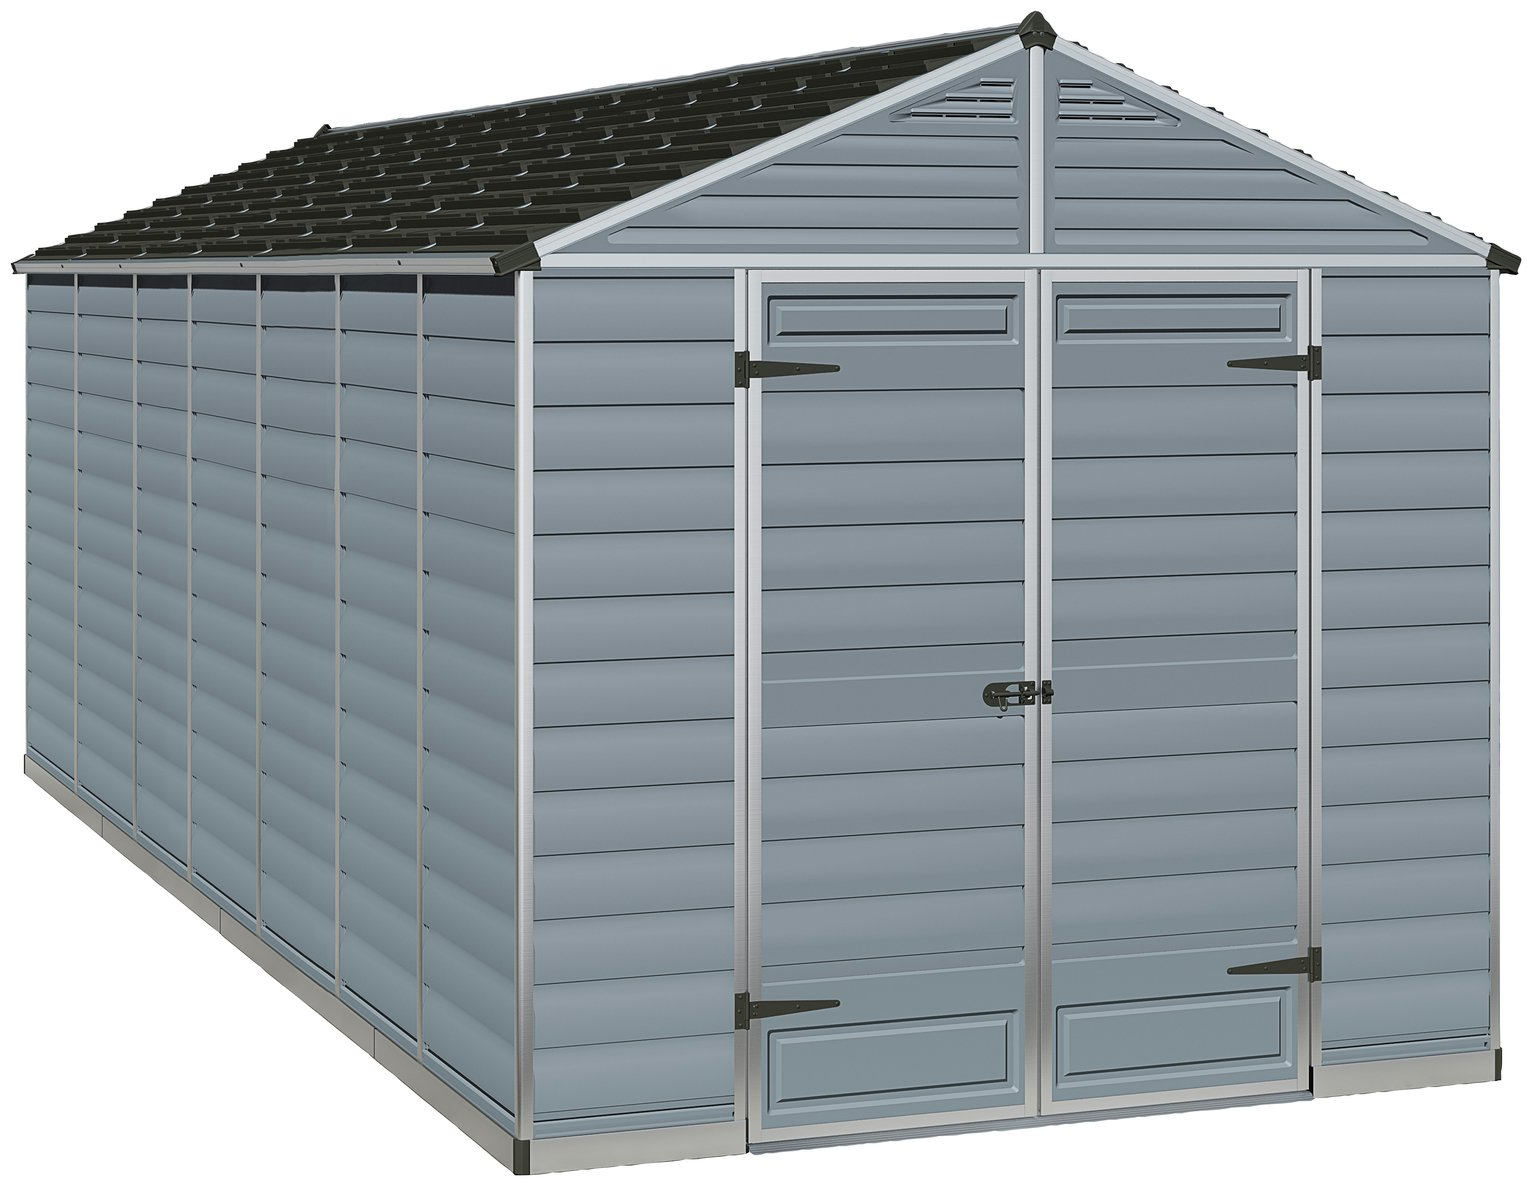 Palram Skylight Plastic 8 x 16ft Shed - Dark Grey Best Price, Cheapest Prices